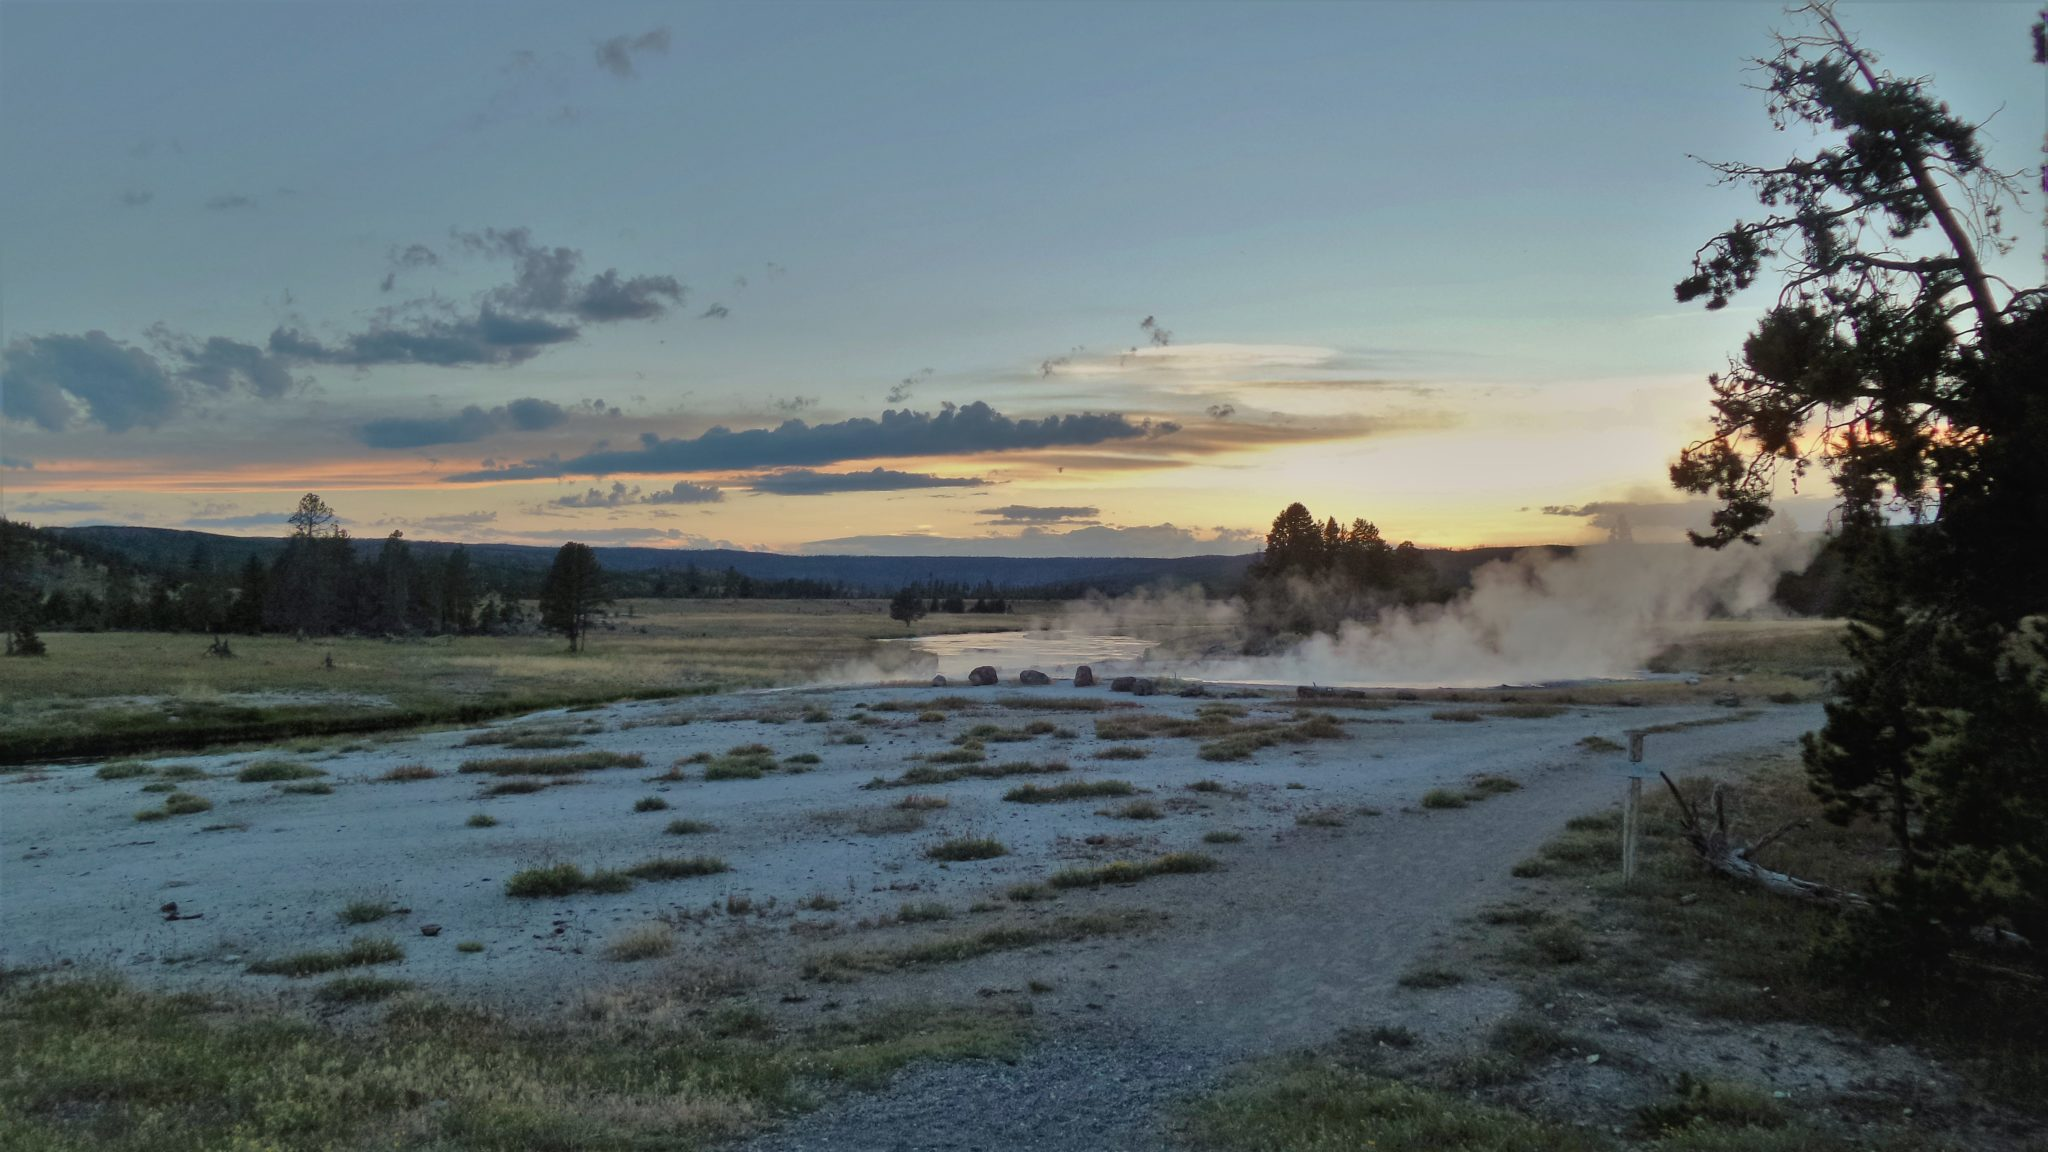 33 Pictures To Make You Visit Yellowstone National Park